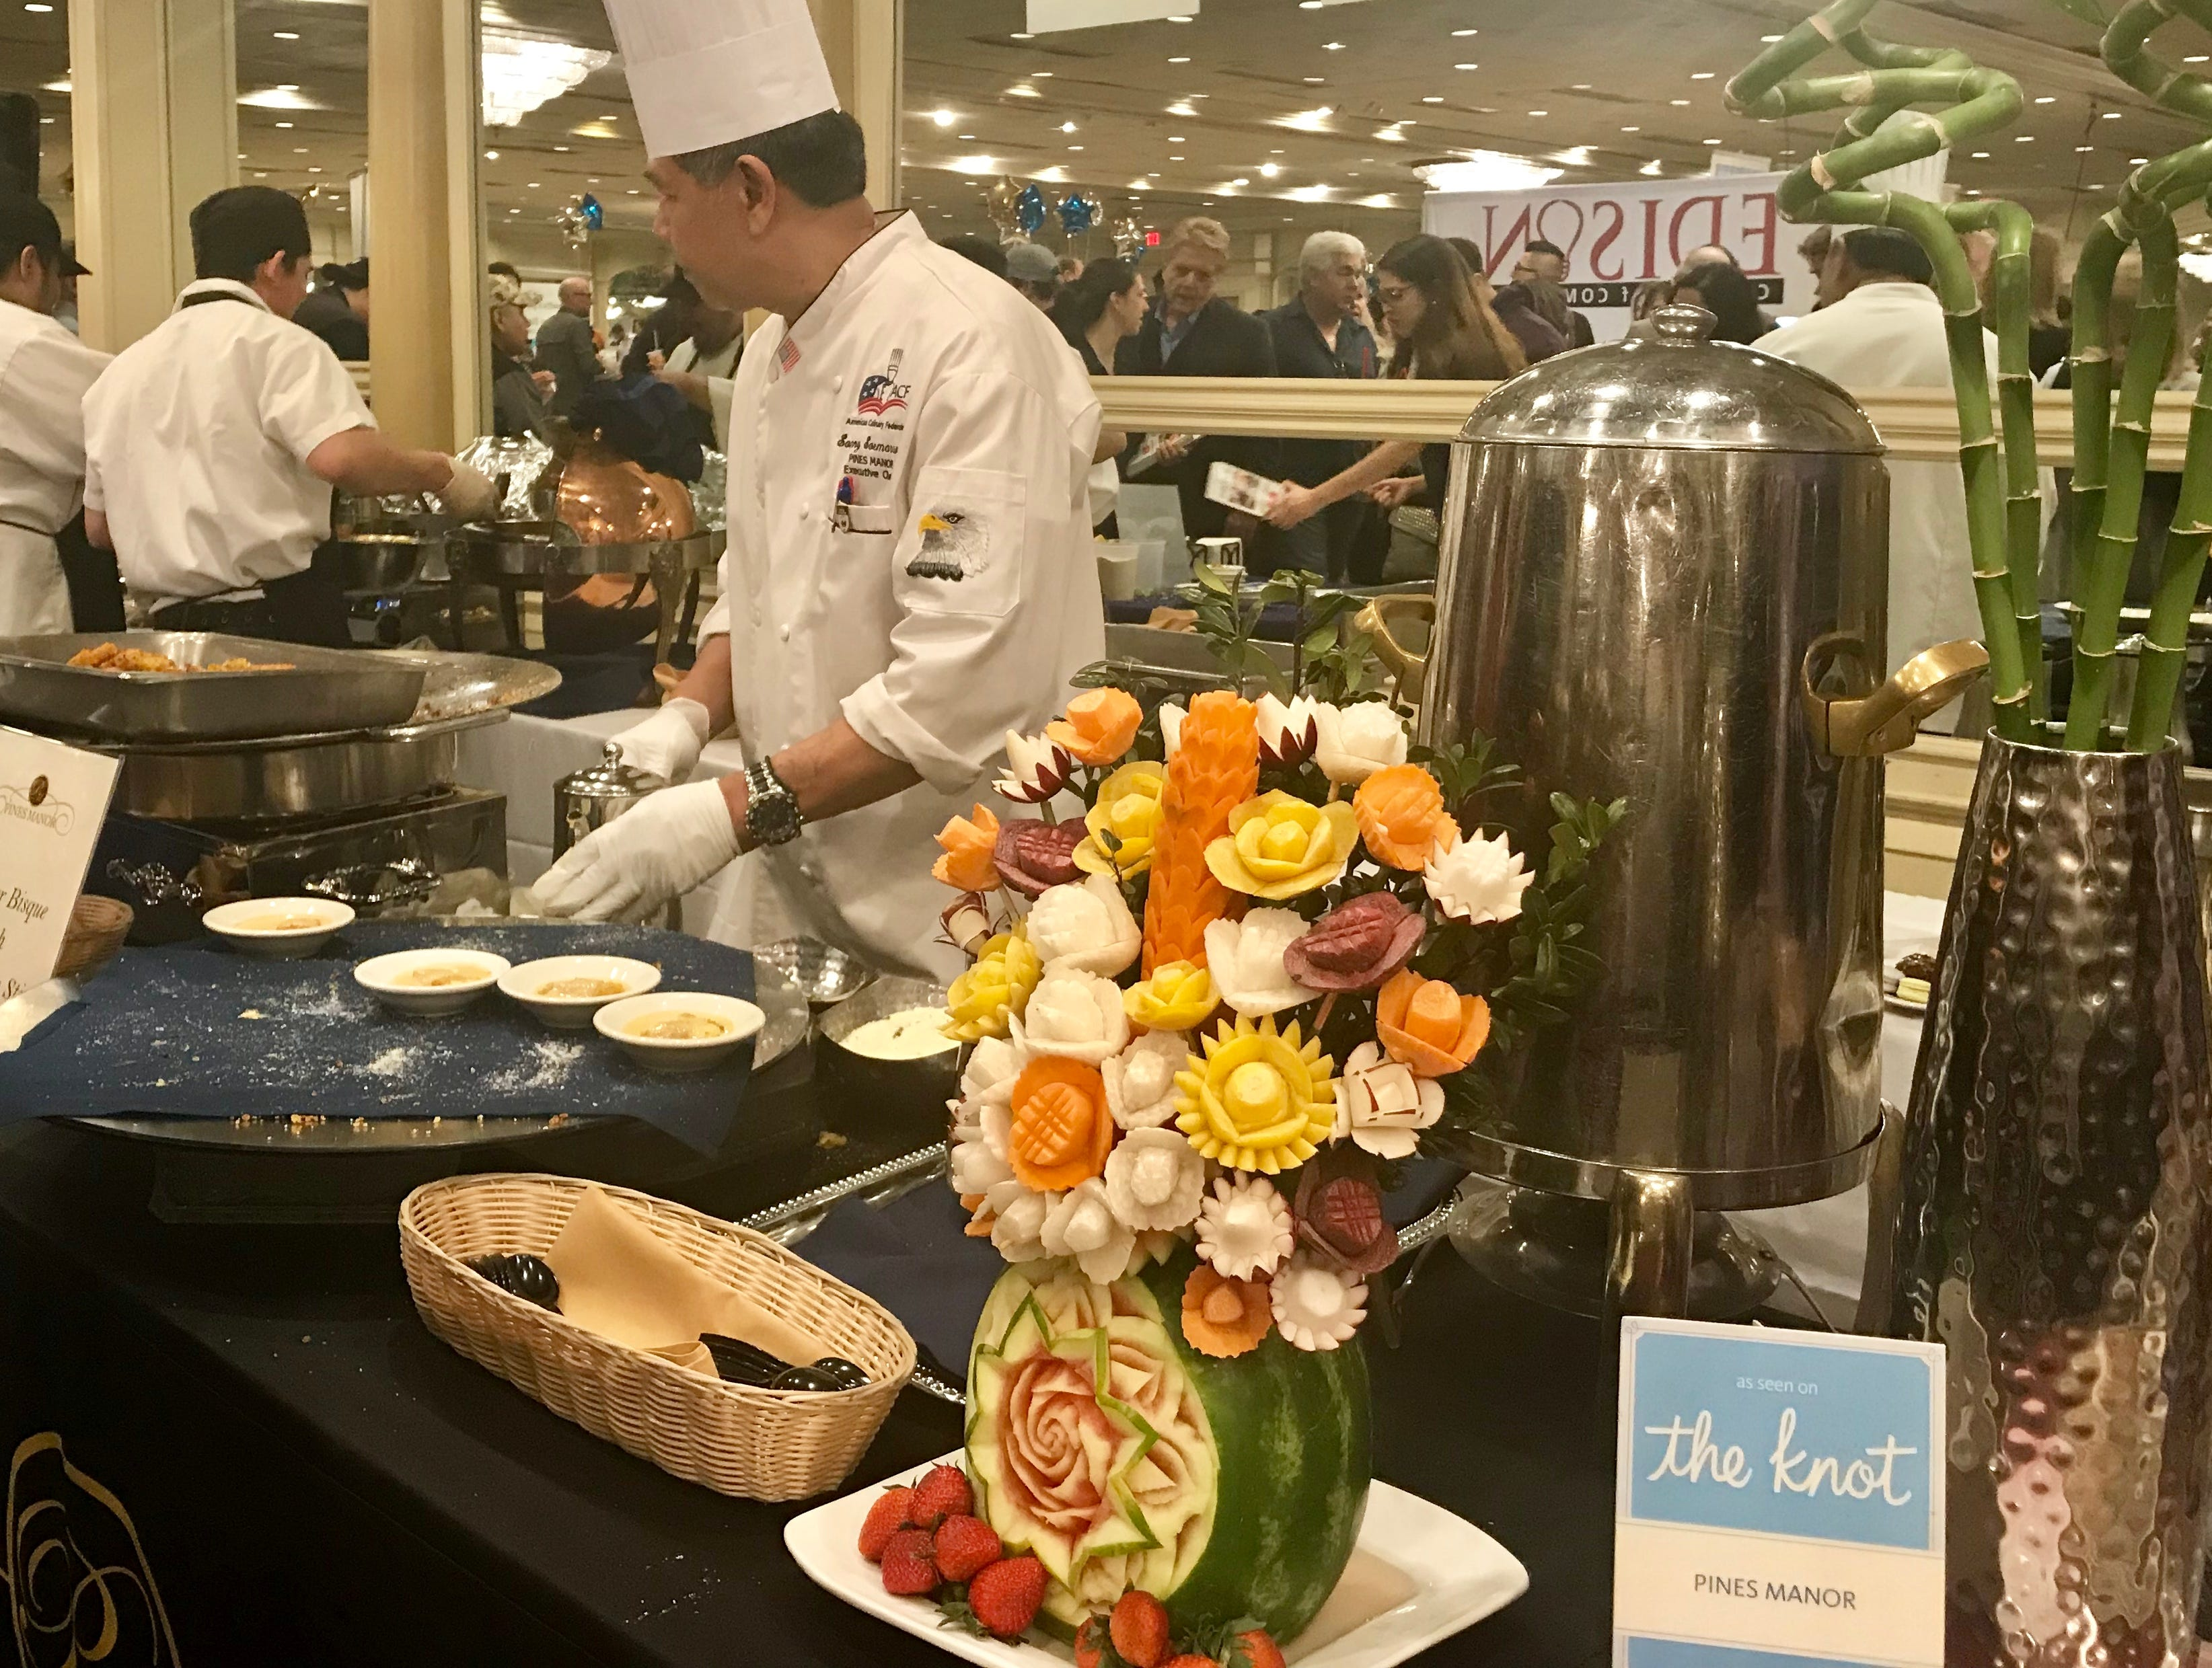 The Edison Chamber of Commerce and The Pines Manor co-hosted the 22nd Annual Taste of Middlesex on Monday, March 25.